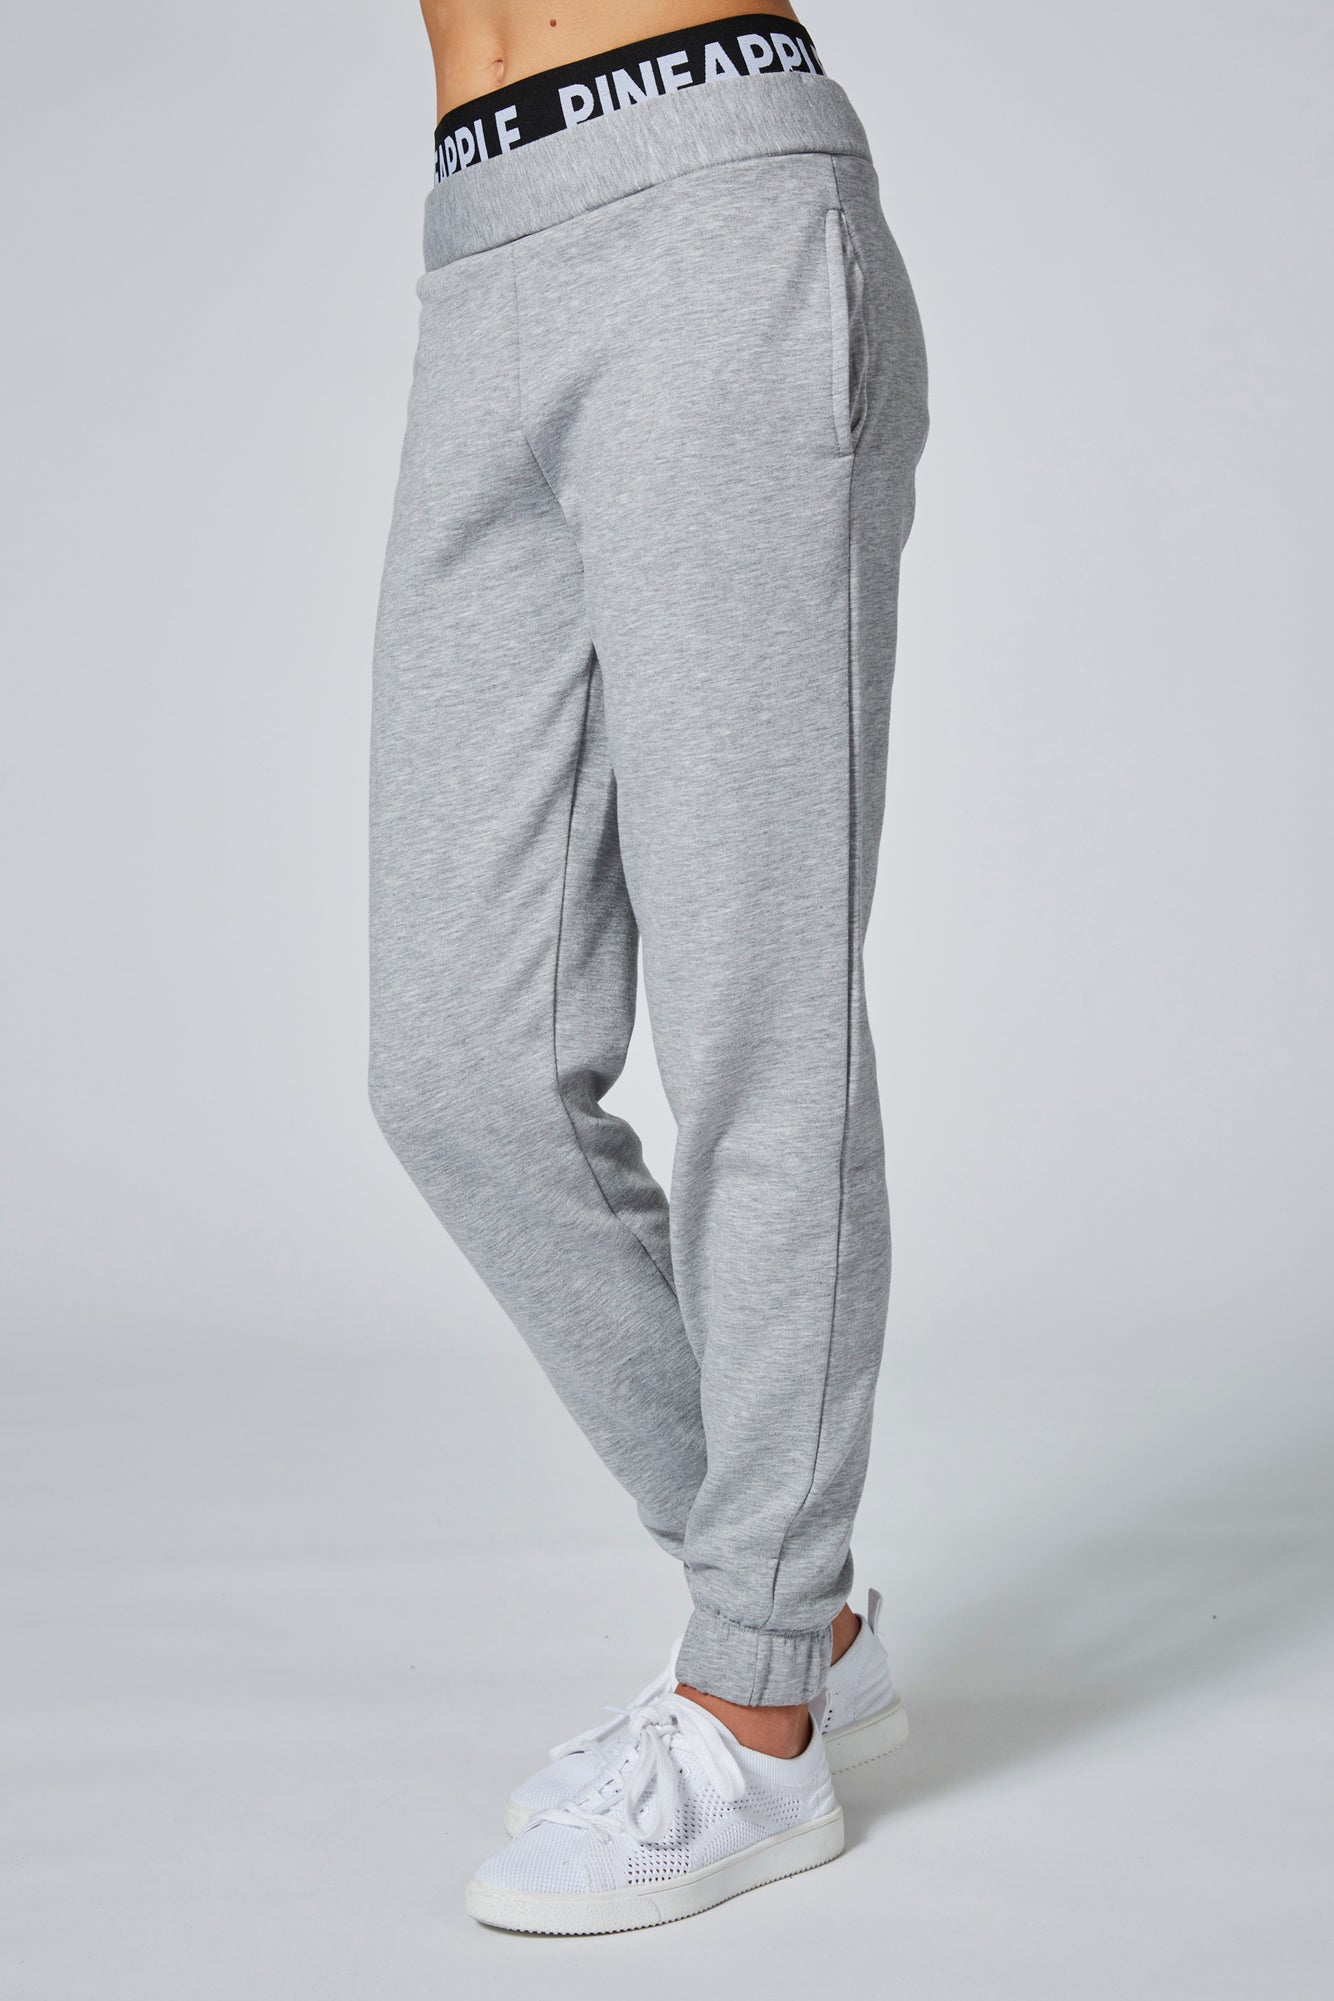 Pineapple Dance Girls' Double Grey Track Pants PT1633CA3